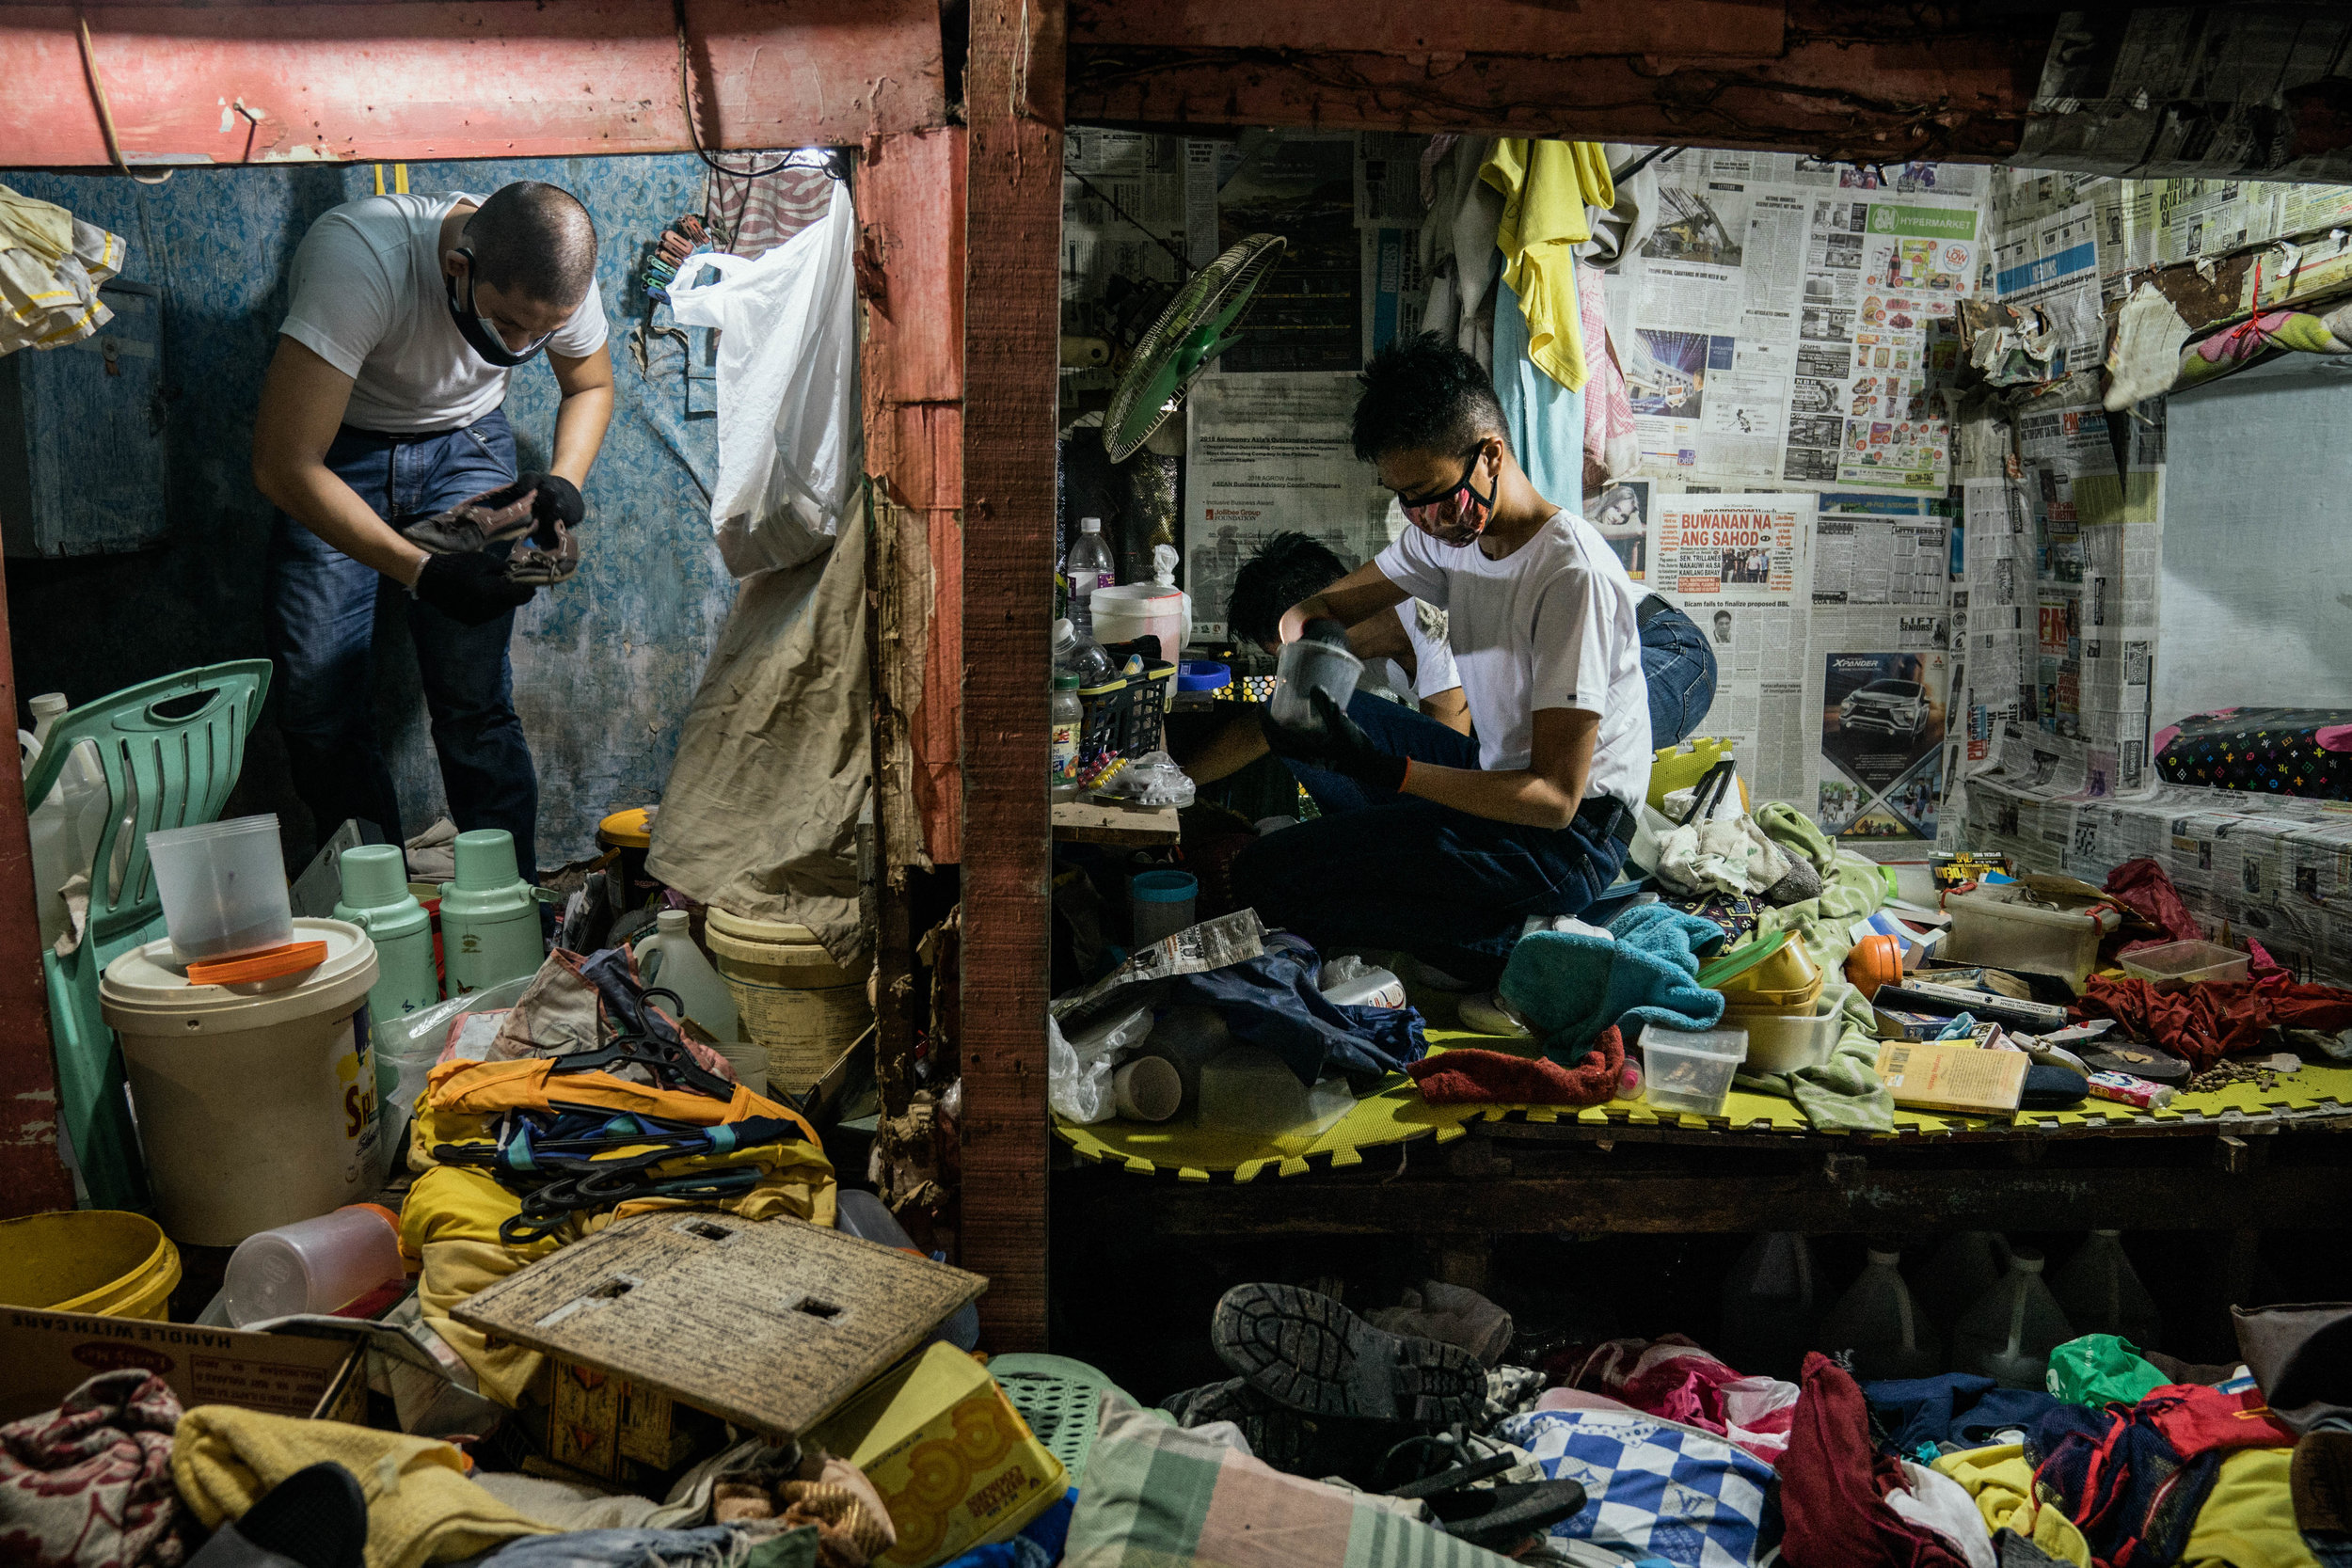 Officials search for contraband during a surprise operation (called Oplan Greyhound) in the Manila City Jail in Manila, Philippines on November 1, 2018. In the Philippines, men with pending cases spend months, sometimes years, in overcrowded cells waiting to be charged, sentenced, or tried.